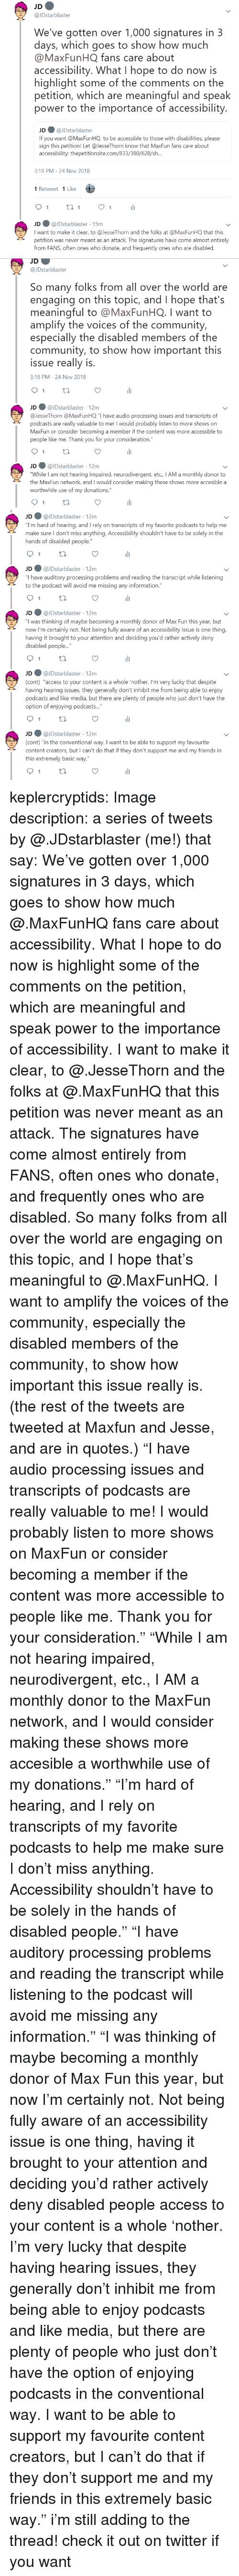 """Monthly: JDstarblaster  We've gotten over 1,000 signatures in 3  days, which goes to show how much  @MaxFunHQ fans care about  accessibility. What I hope to do now is  highlight some of the comments on the  petition, which are meaningful and speak  power to the importance of accessibility  JD ● @lDstarblaster  If you want @MaxFunHQ to be accessible to those with disabilities, please  sign this petition! Let @JesseThorn know that MaxFun fans care about  accessibility: thepetitionsite.com/833/380/628/s...  3:18 PM-24 Nov 2018  1 Retweet 1 Like  JD @JDstarblaster 15m  I want to make it clear, to @JesseThorn and the folks at @MaxFunHQ that this  petition was never meant as an attack. The signatures have come almost entirely  from FANS, often ones who donate, and frequently ones who are disabled.   JD  @JDstarblaster  So many folks from all over the world are  engaging on this topic, and I hope that's  meaningful to @MaxFunHQ. I want to  amplify the voices of the community,  especially the disabled members of the  community, to show how important this  issue really is  3:18 PM-24 Nov 2018  JD ● @JDstarblaster· 12m  @lesseThorn @MaxFun HQ """"I have audio processing issues and transcripts of  о,  dcasts are really valuable to me! I would probably listen to more shows on  MaxFun or consider becoming a member if the content was more accessible to  people like me. Thank you for your consideration.""""  JD@JDstarblaster 12m  While I am not hearing impaired, neurodivergent, etc., IAM a monthly donor to  the MaxFun network, and I would consider making these shows more accesible a  worthwhile use of my donations.""""   JD@JDstarblaster 12m  ou""""I'm hard of hearing, and I rely on transcripts of my favorite podcasts to help me  make sure I don't miss anything. Accessibility shouldn't have to be solely in the  hands of disabled people  JD@JDstarblaster 12m  have auditory processing problems and reading the transcript while listening  to the podcast will avoid me missing any information.""""  JD"""